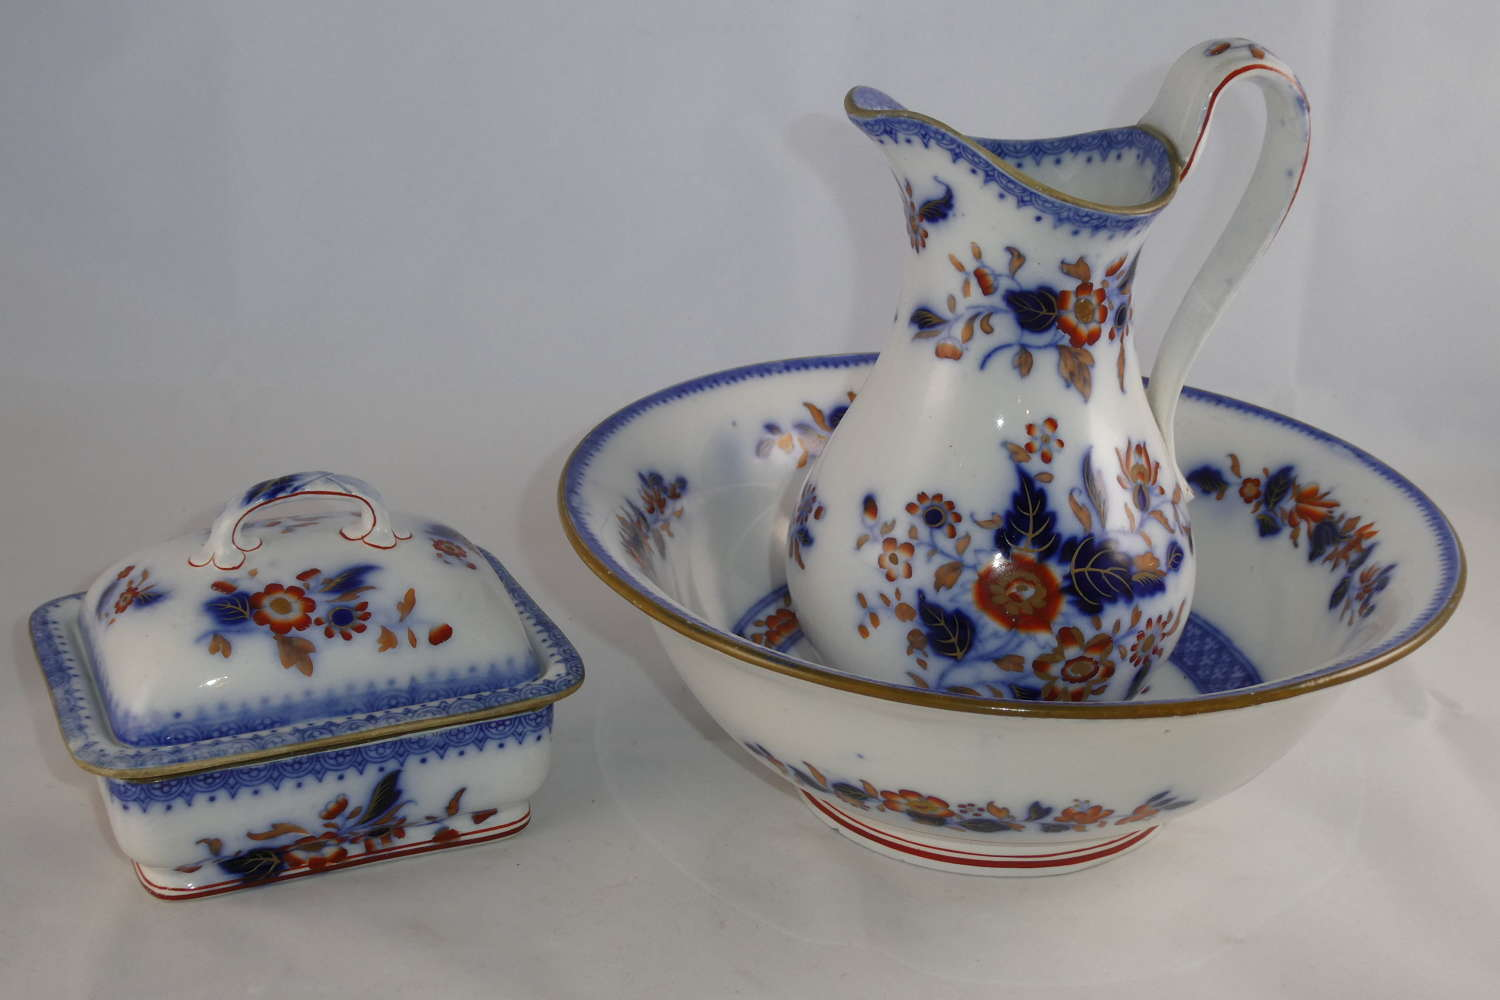 Small Jug and Bowl Set